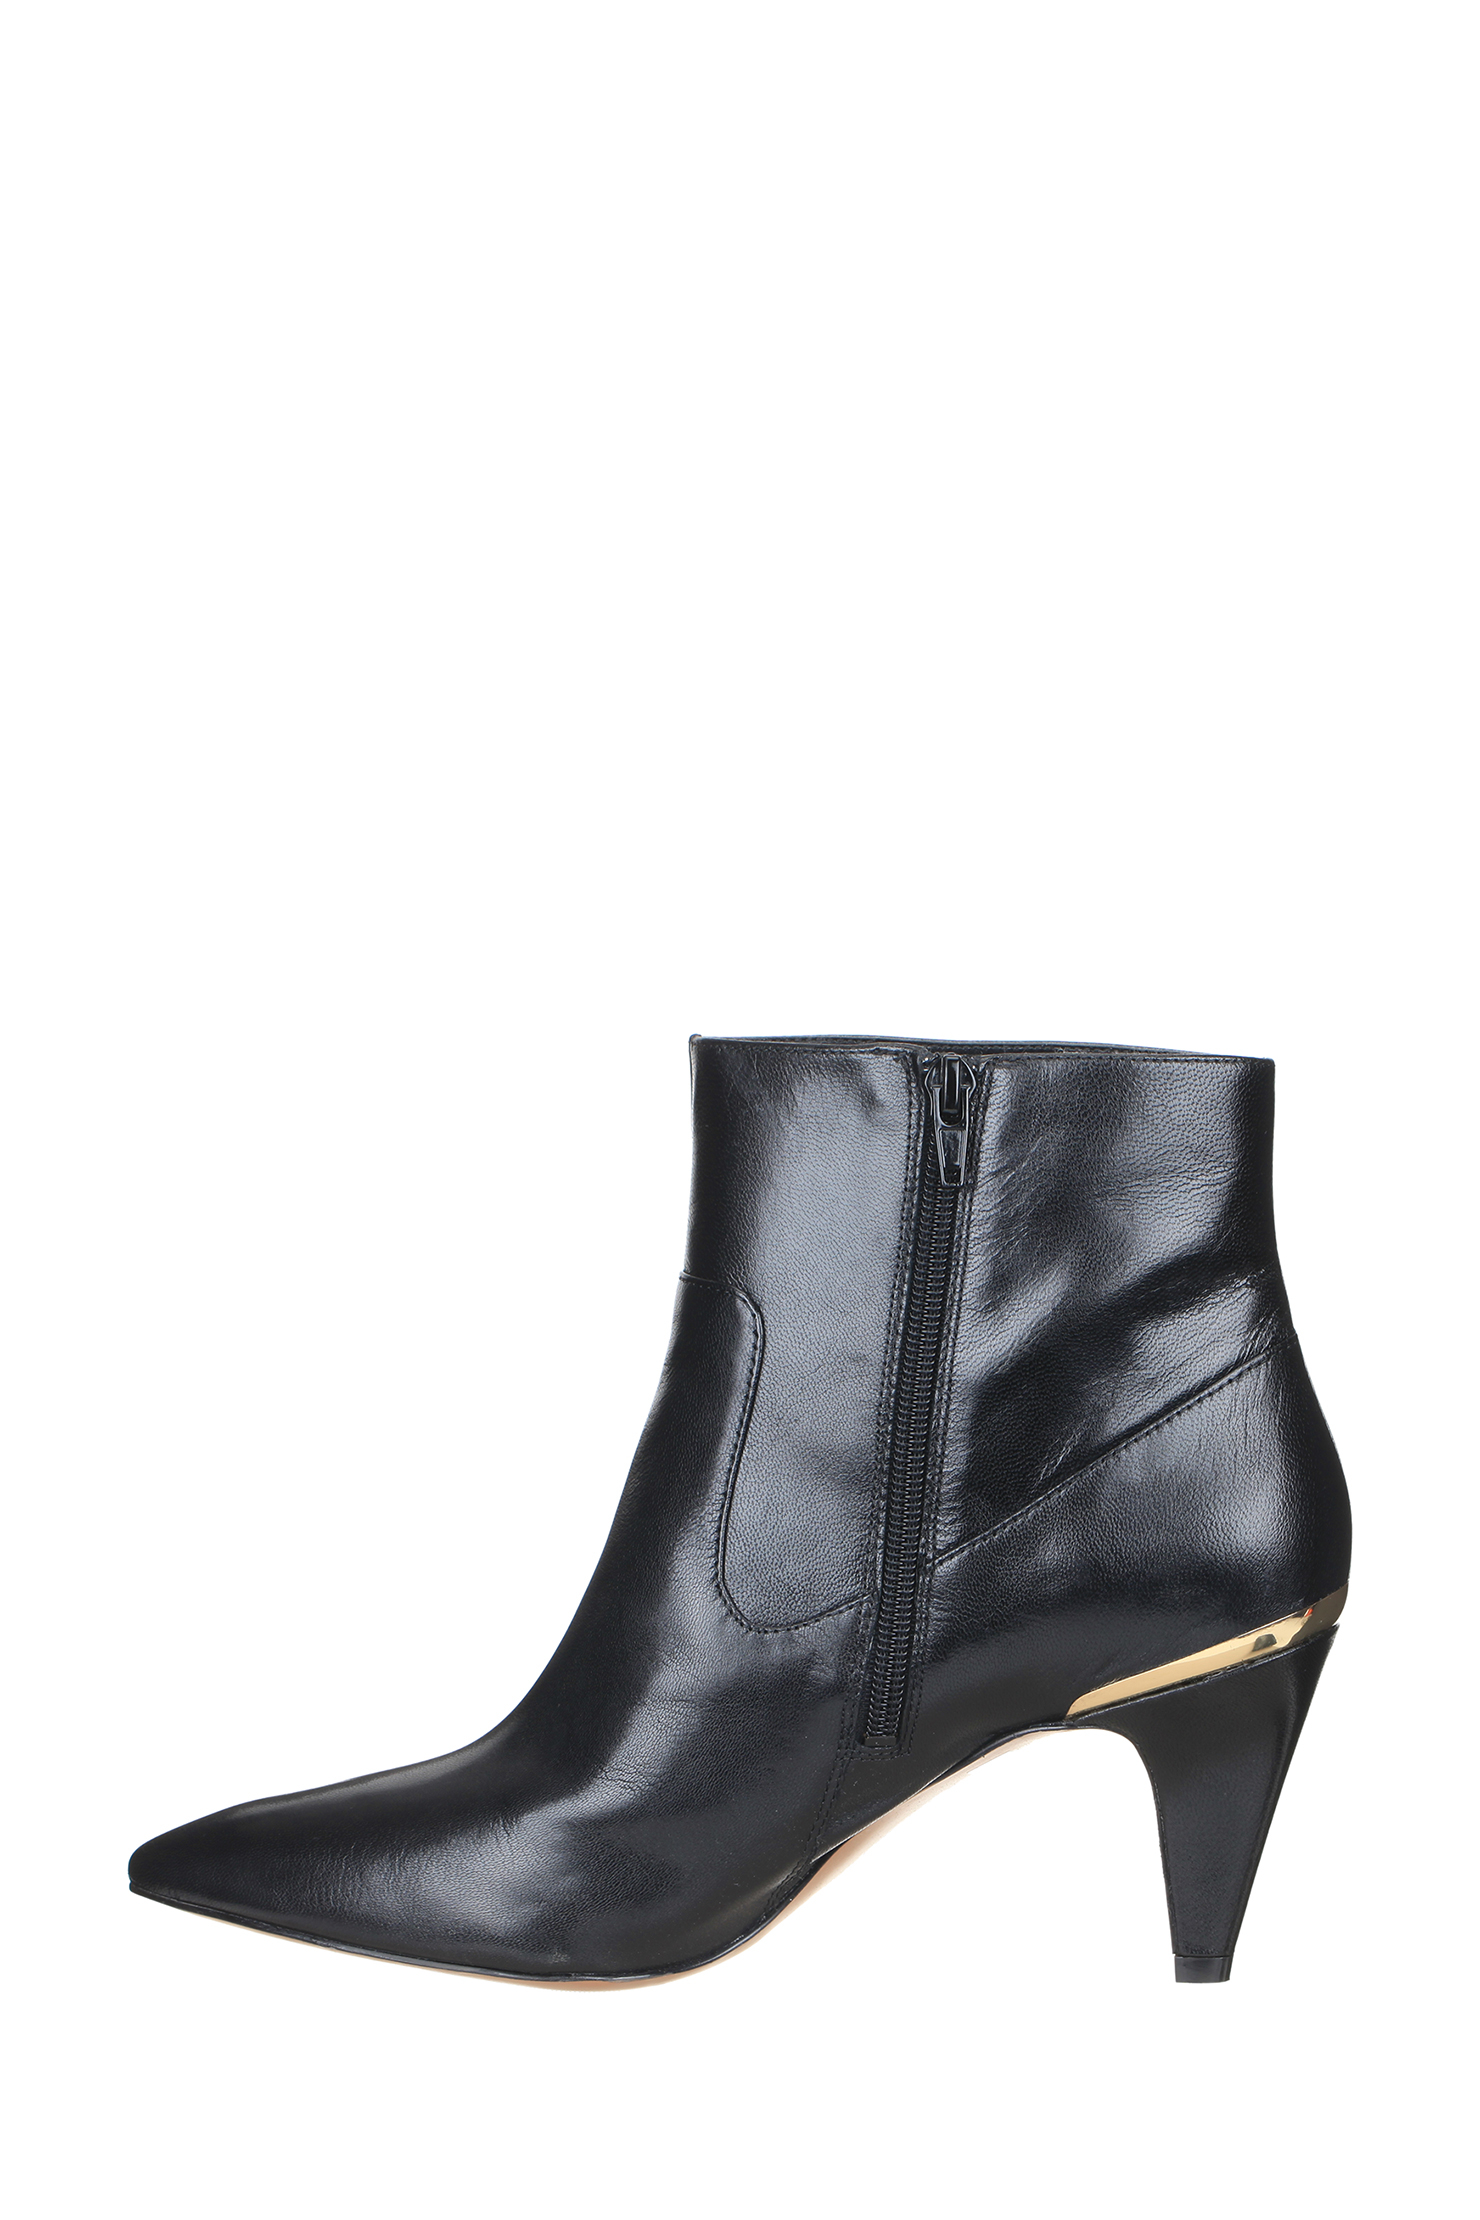 nine west boots in black lyst